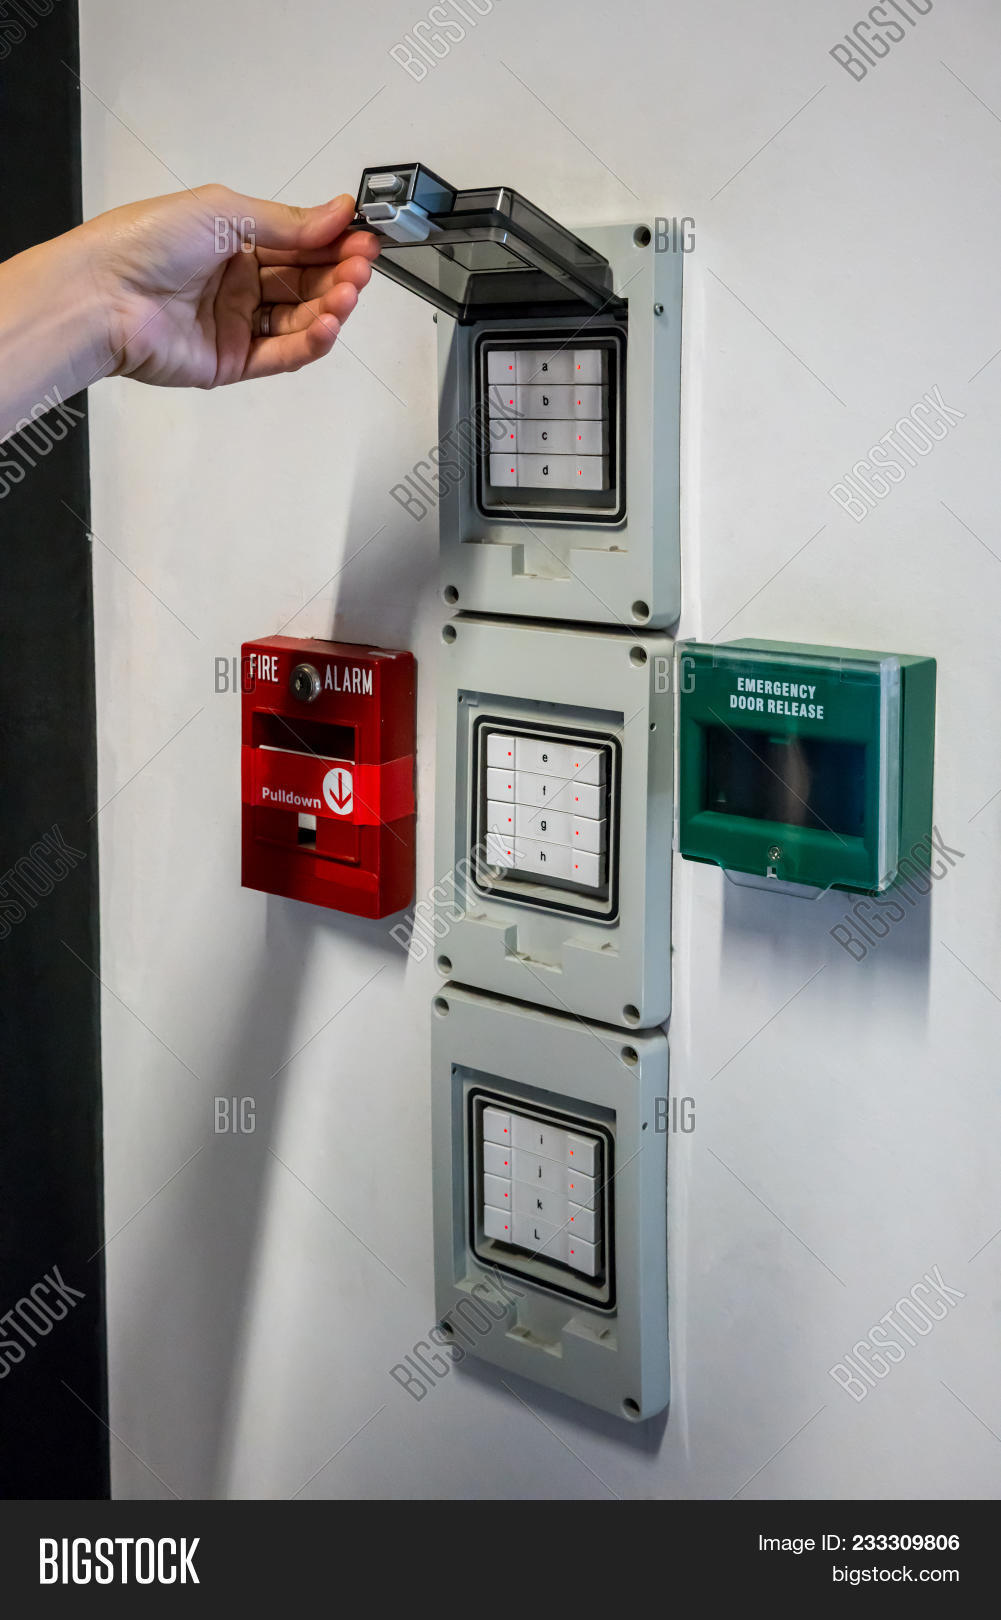 Hand Open Electric Box Image Photo Free Trial Bigstock Electronic Door Release Switch Near The Push In Pull Down Case Of Fire